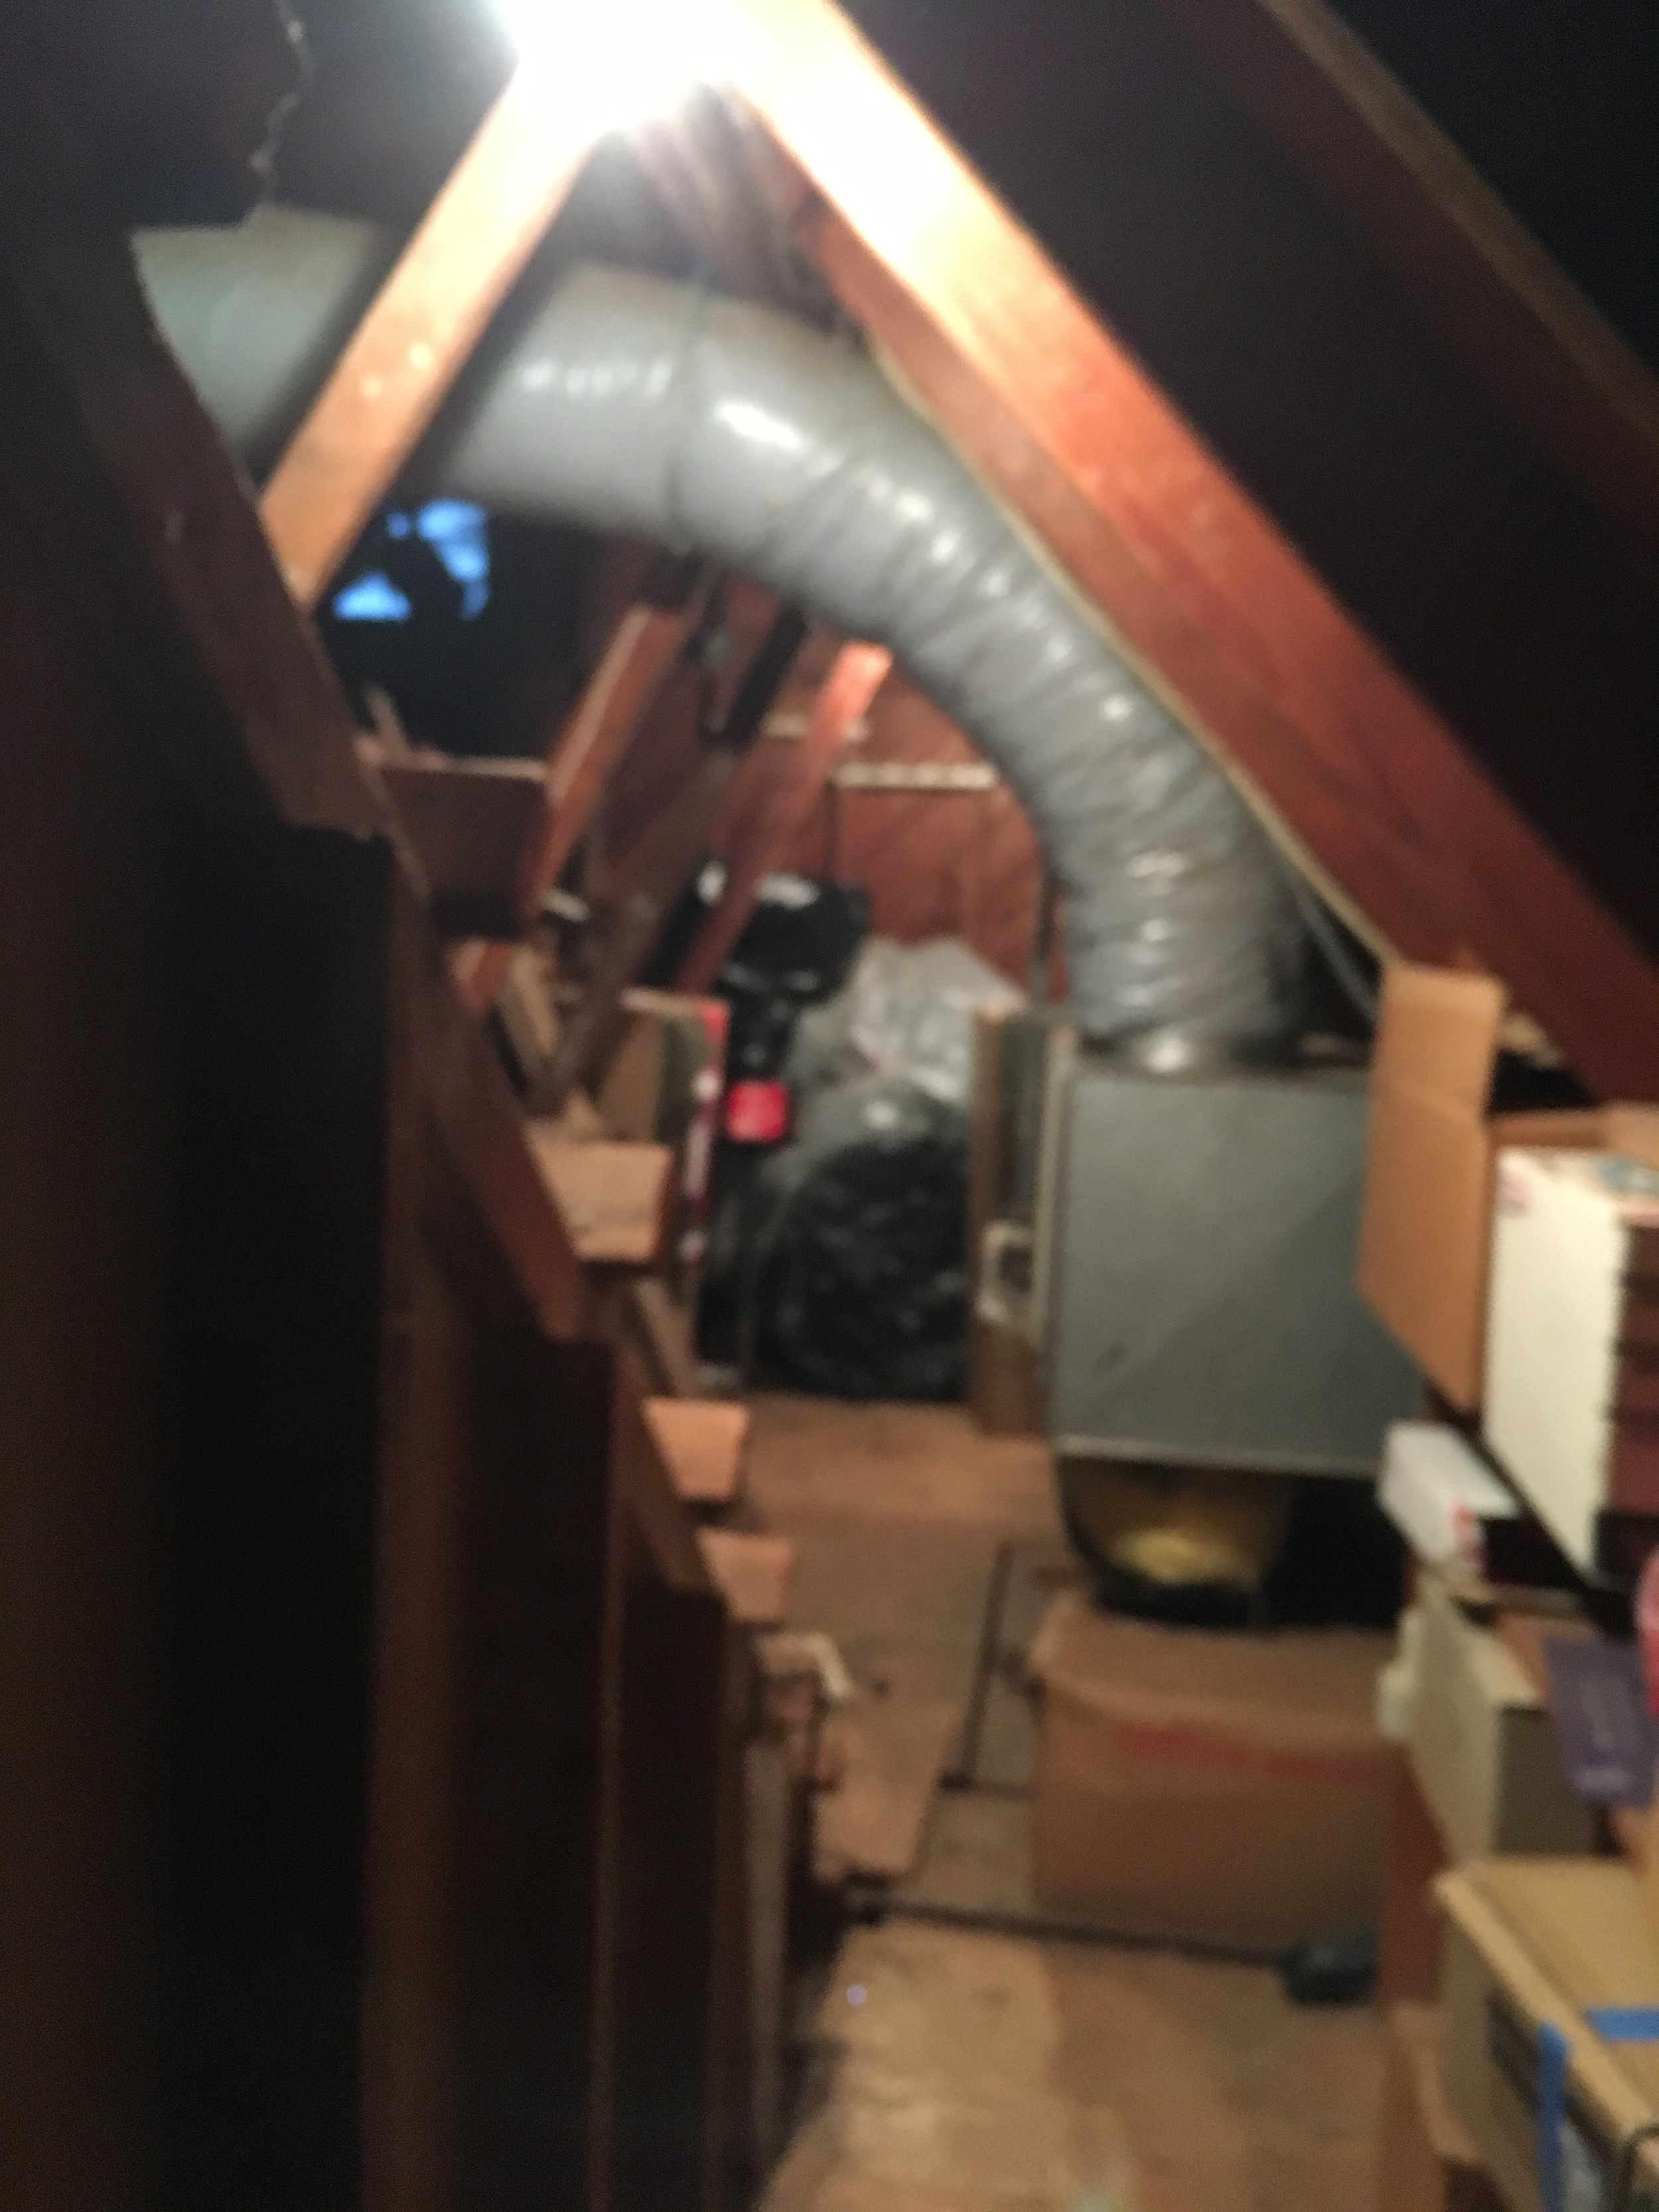 One attic and counting